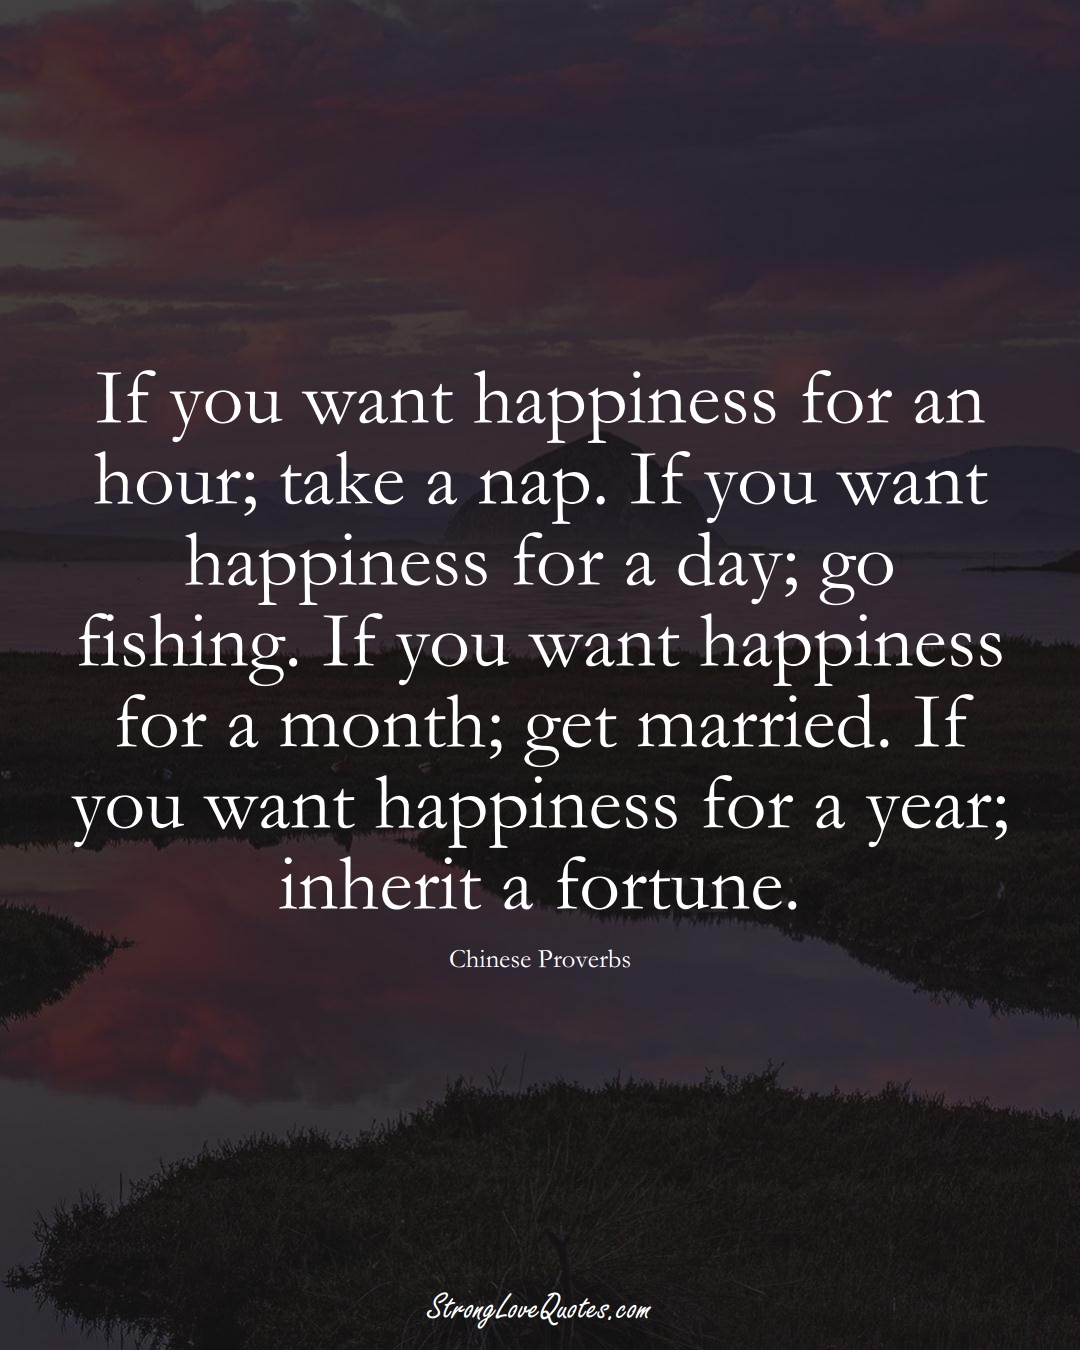 If you want happiness for an hour; take a nap. If you want happiness for a day; go fishing. If you want happiness for a month; get married. If you want happiness for a year; inherit a fortune. (Chinese Sayings);  #AsianSayings